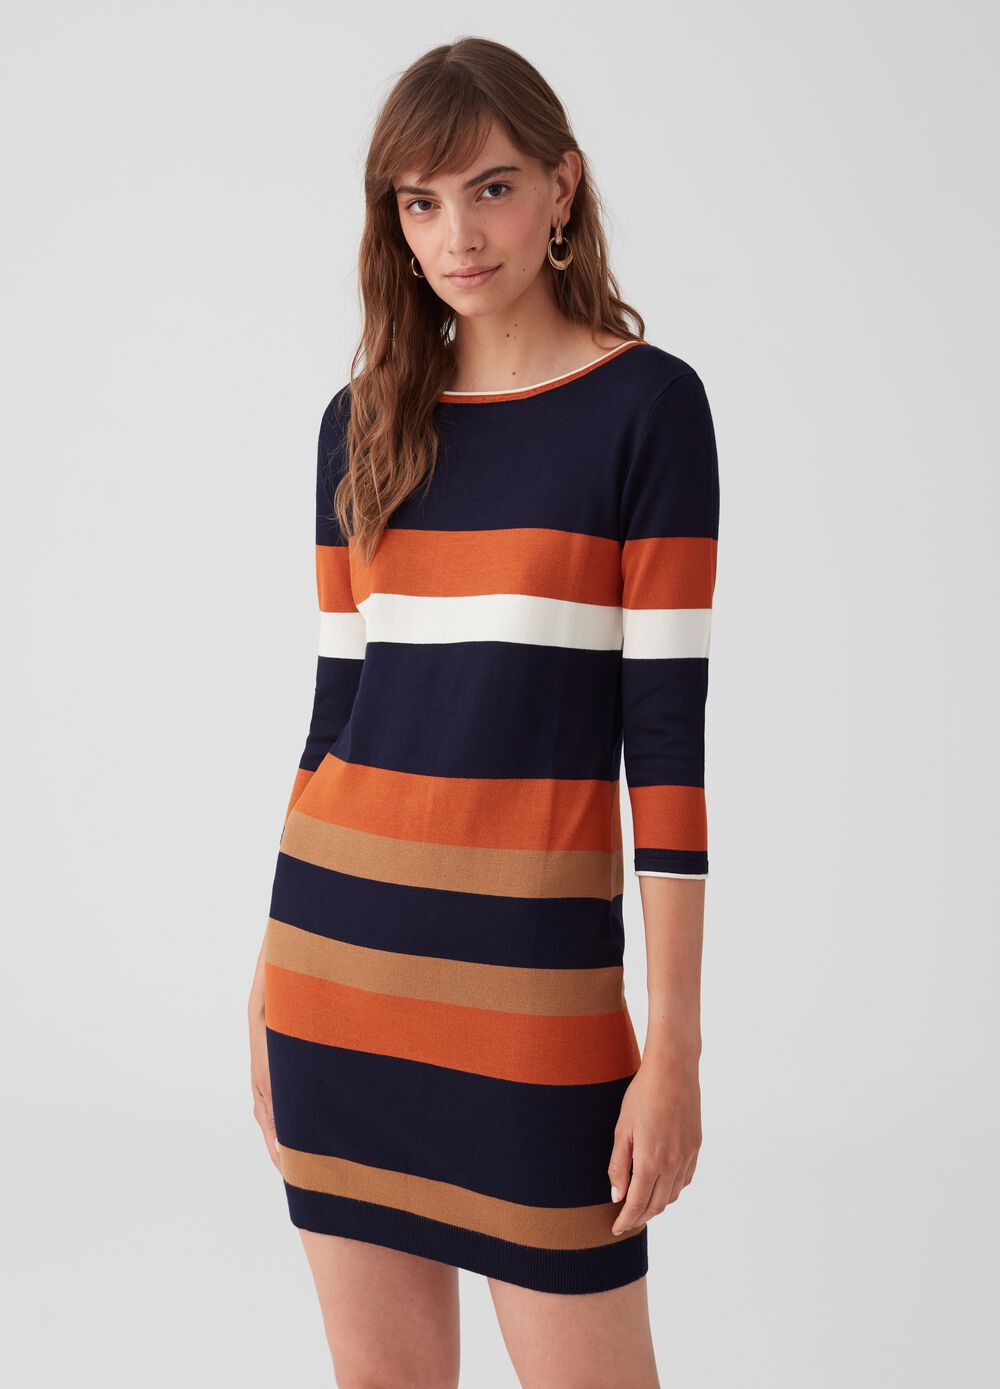 Tube dress with striped pattern